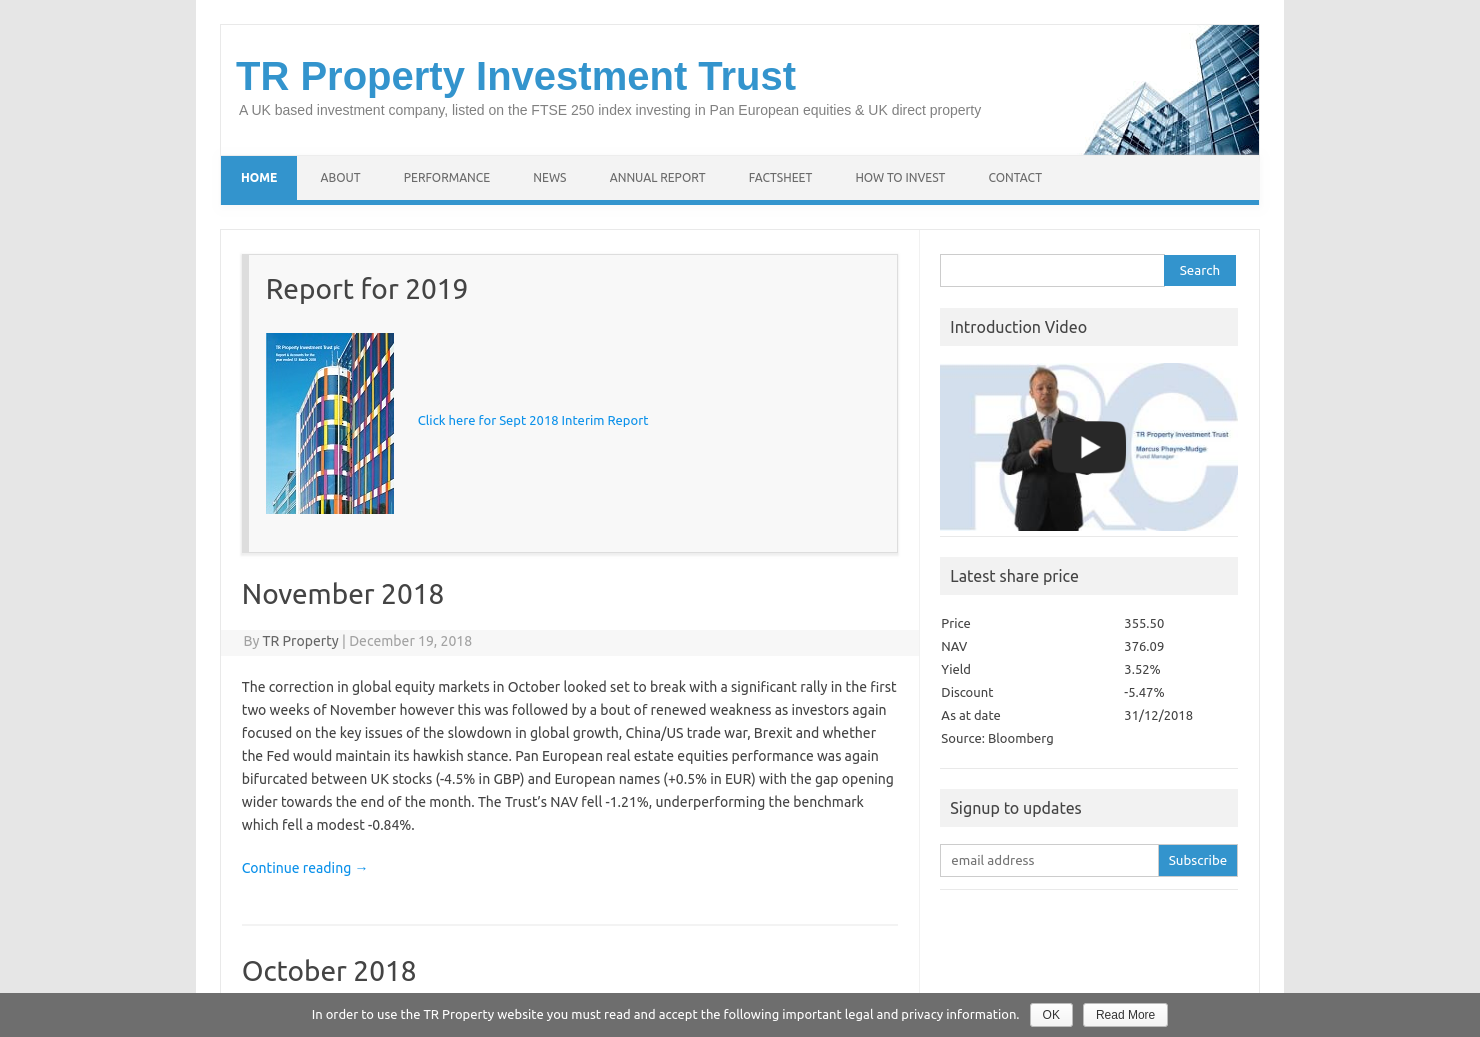 TR Property Investment Trust Home Page